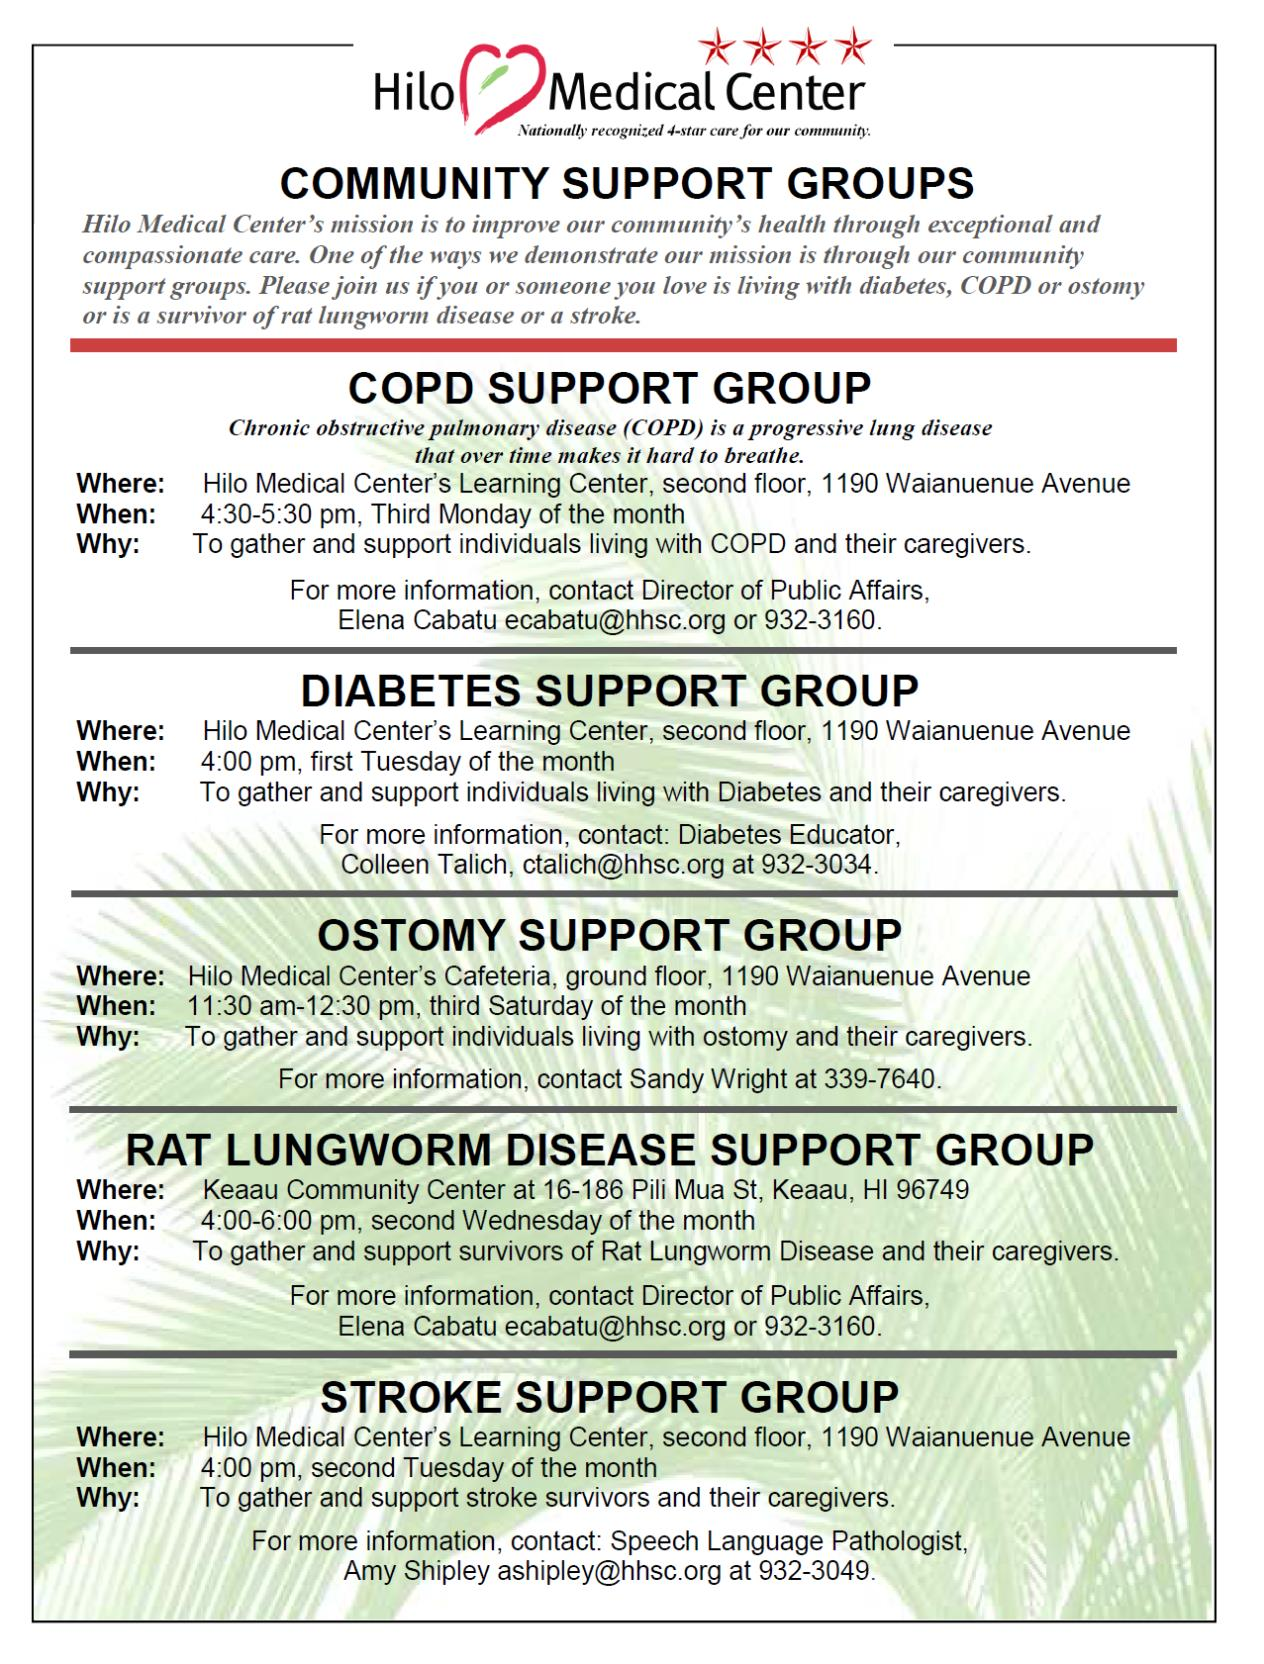 HMC Support Groups Flyer